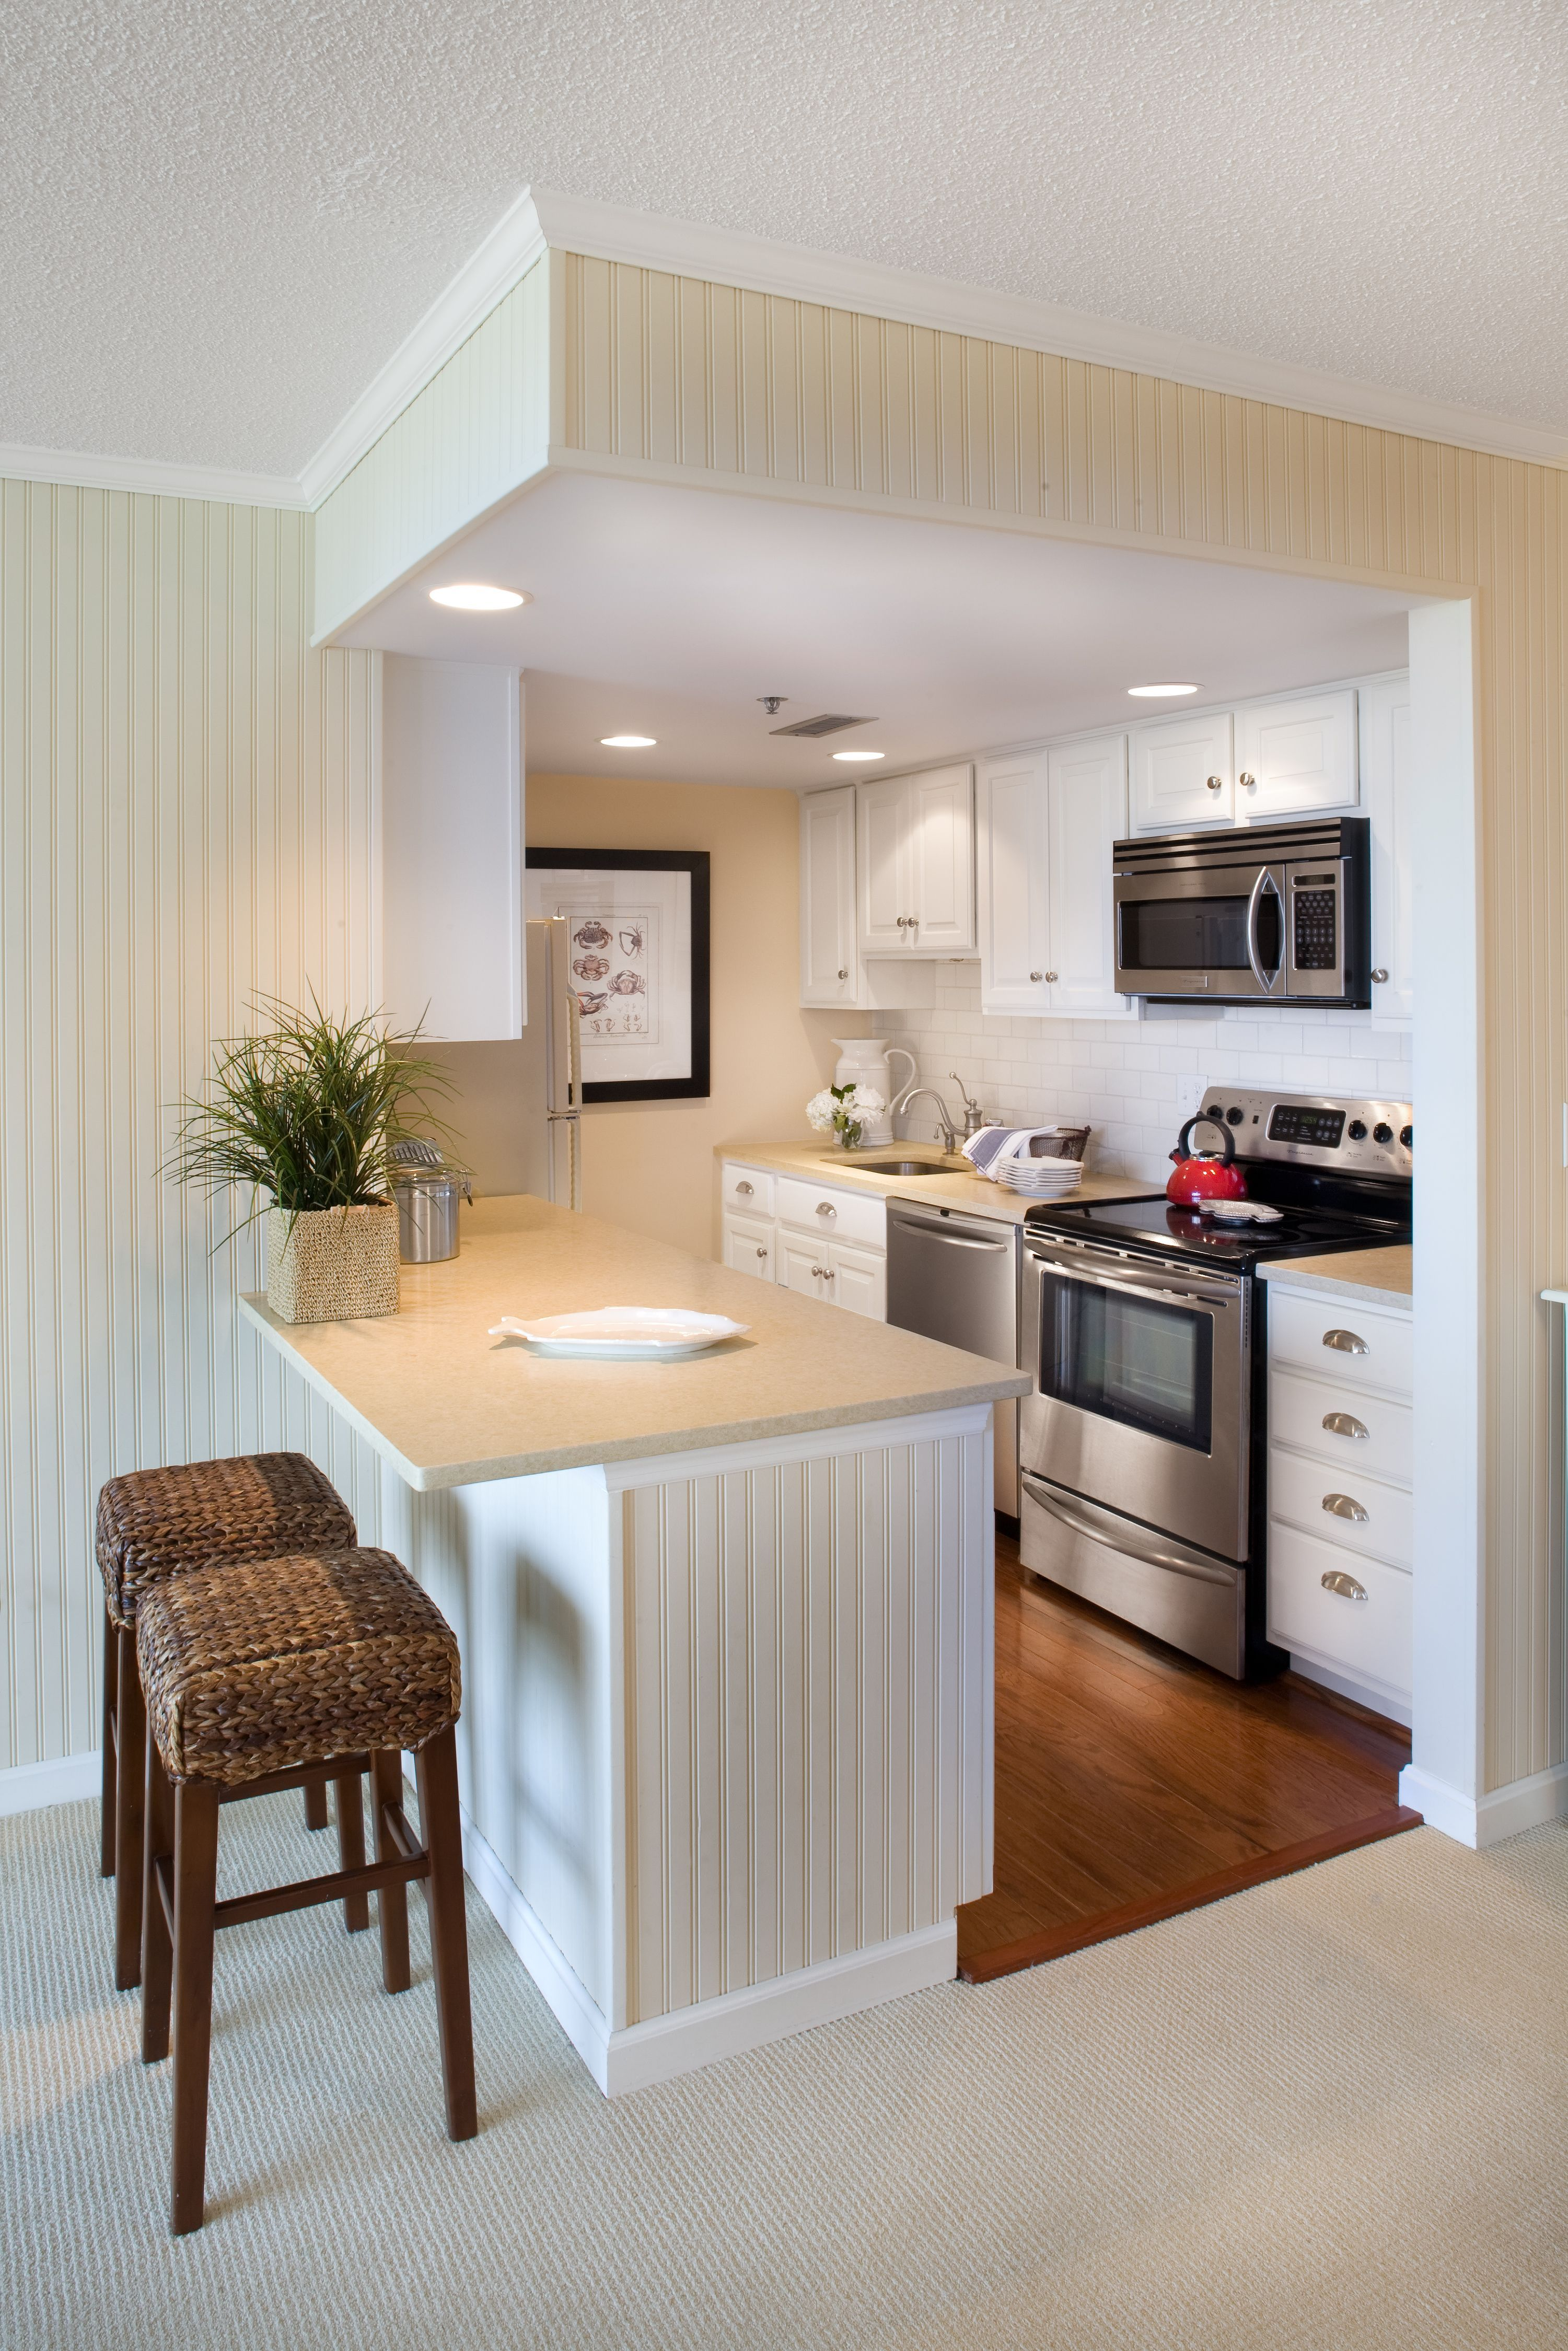 Pin By Ern On Apartment Ideas Small Kitchen Decor Remodel Layout